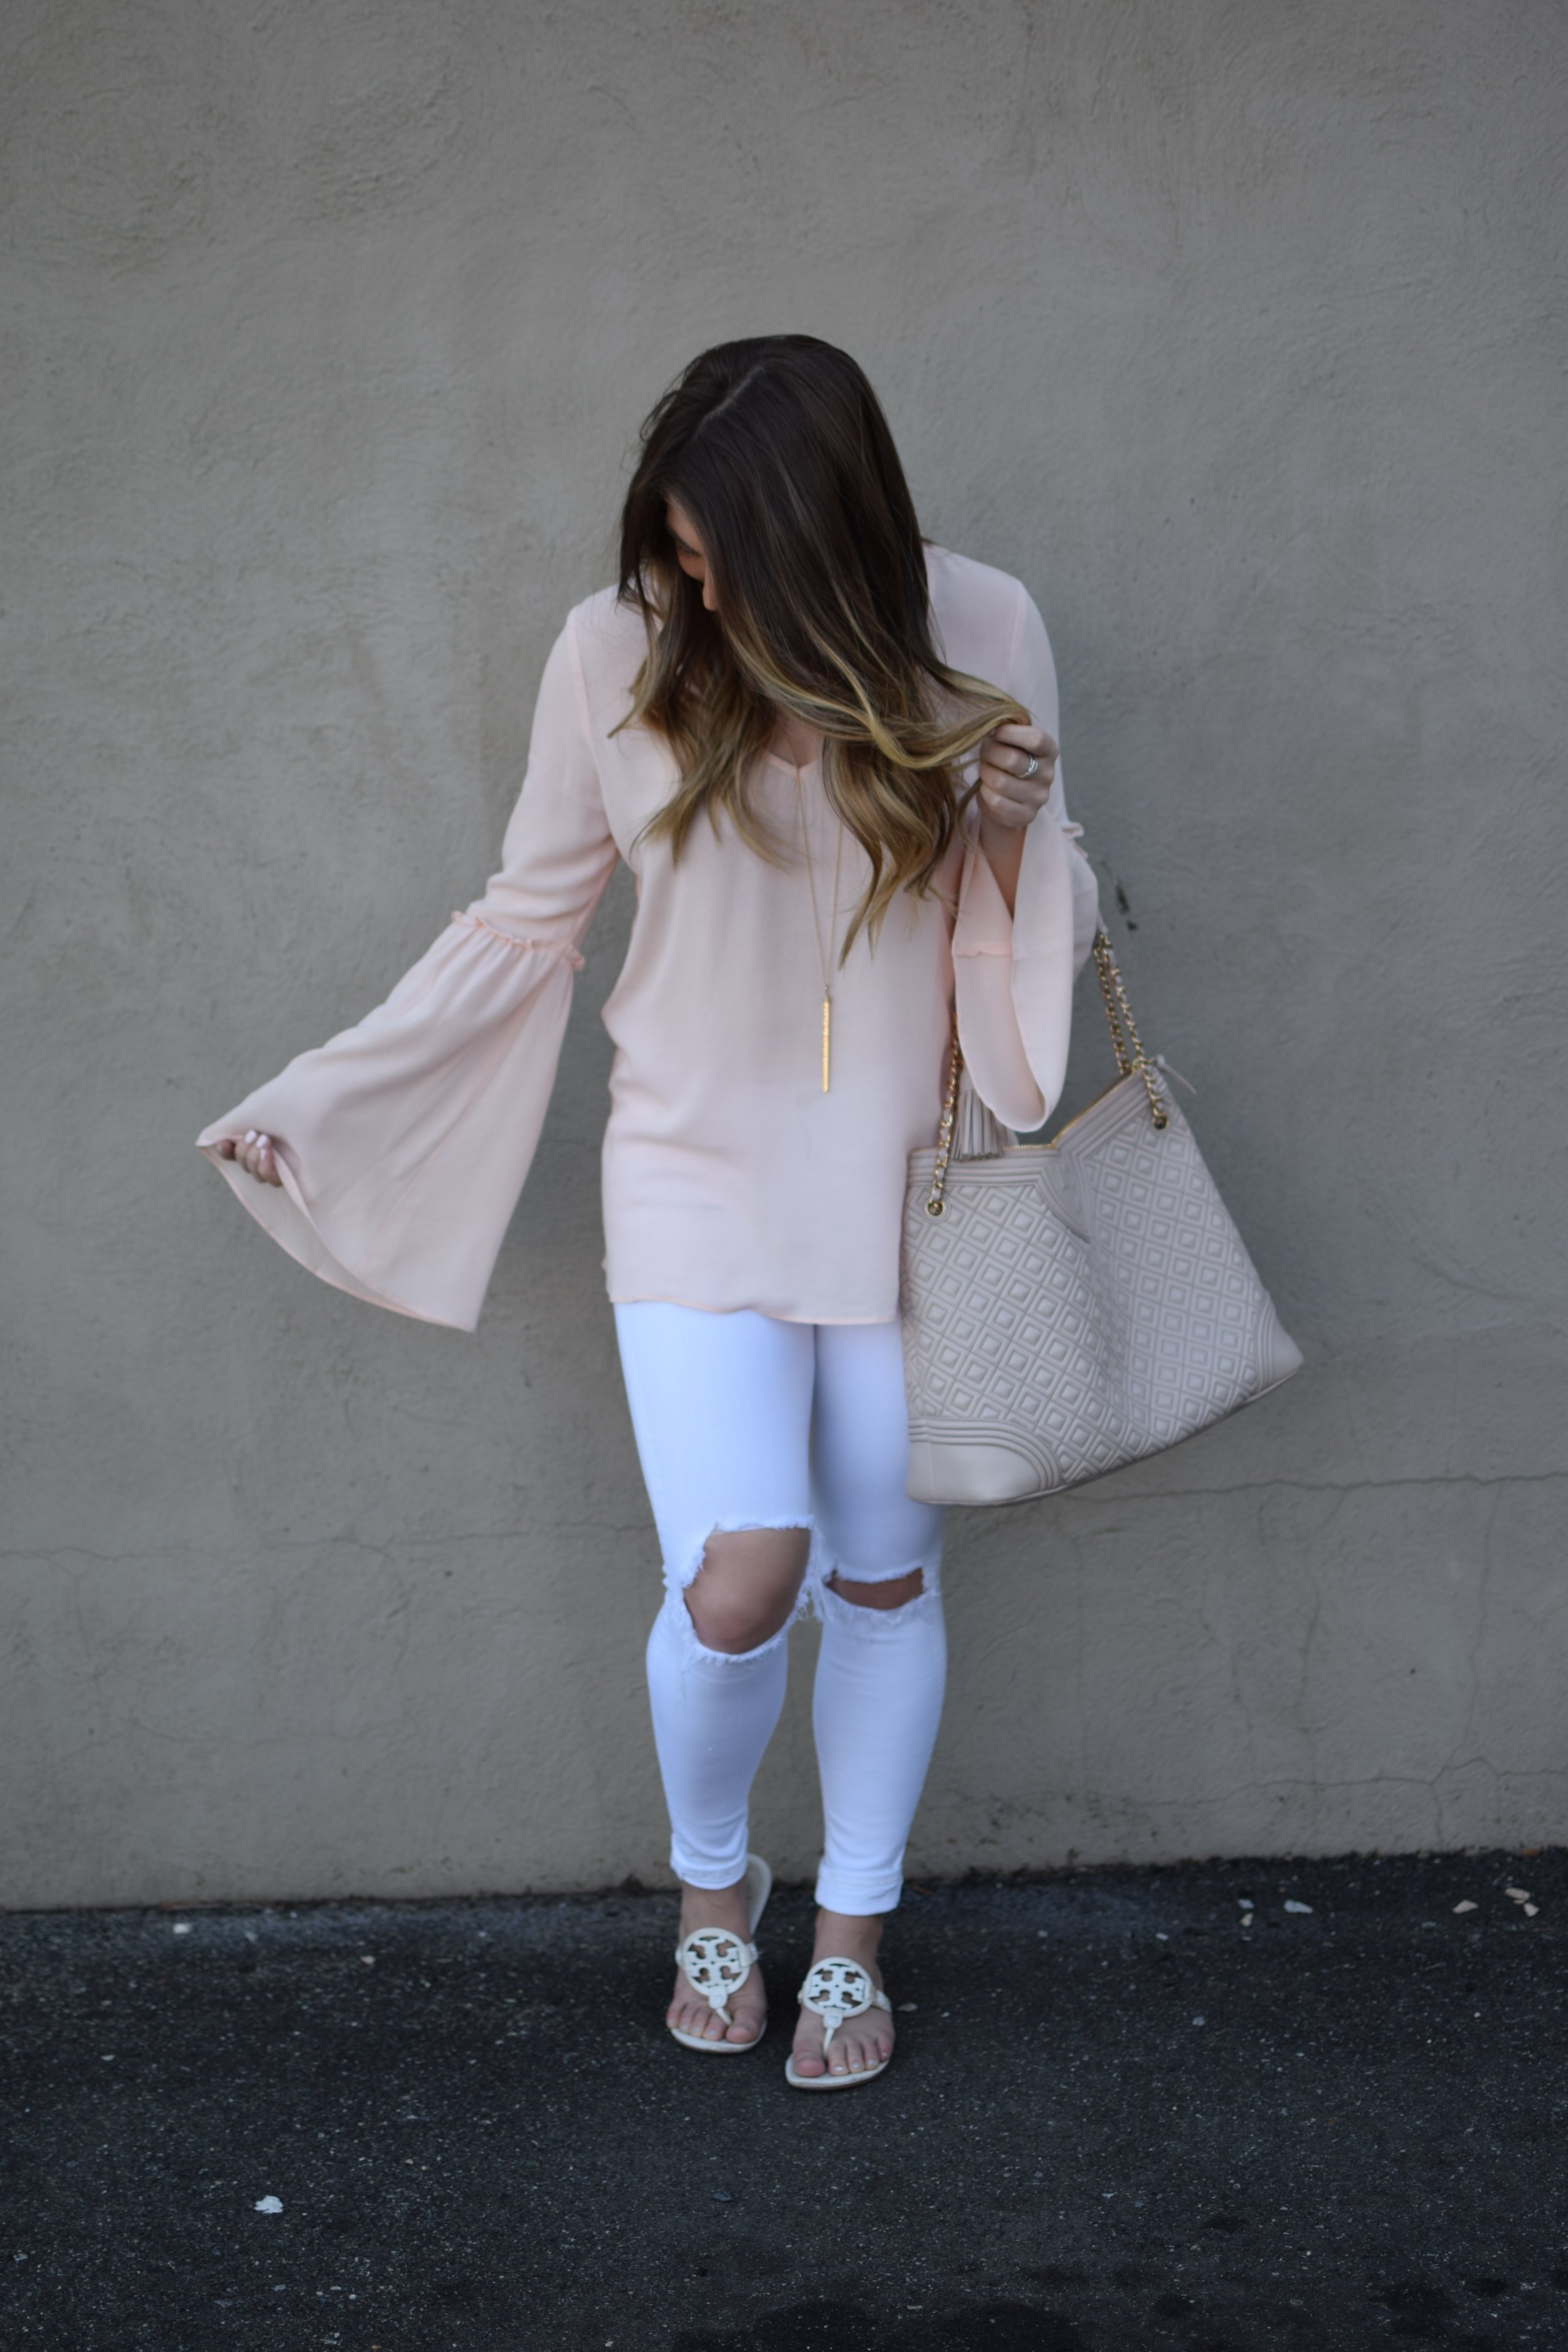 blush bell sleeve top / white distressed denim / tory burch miller sandal / nashelle layered necklaces / spring outfit idea